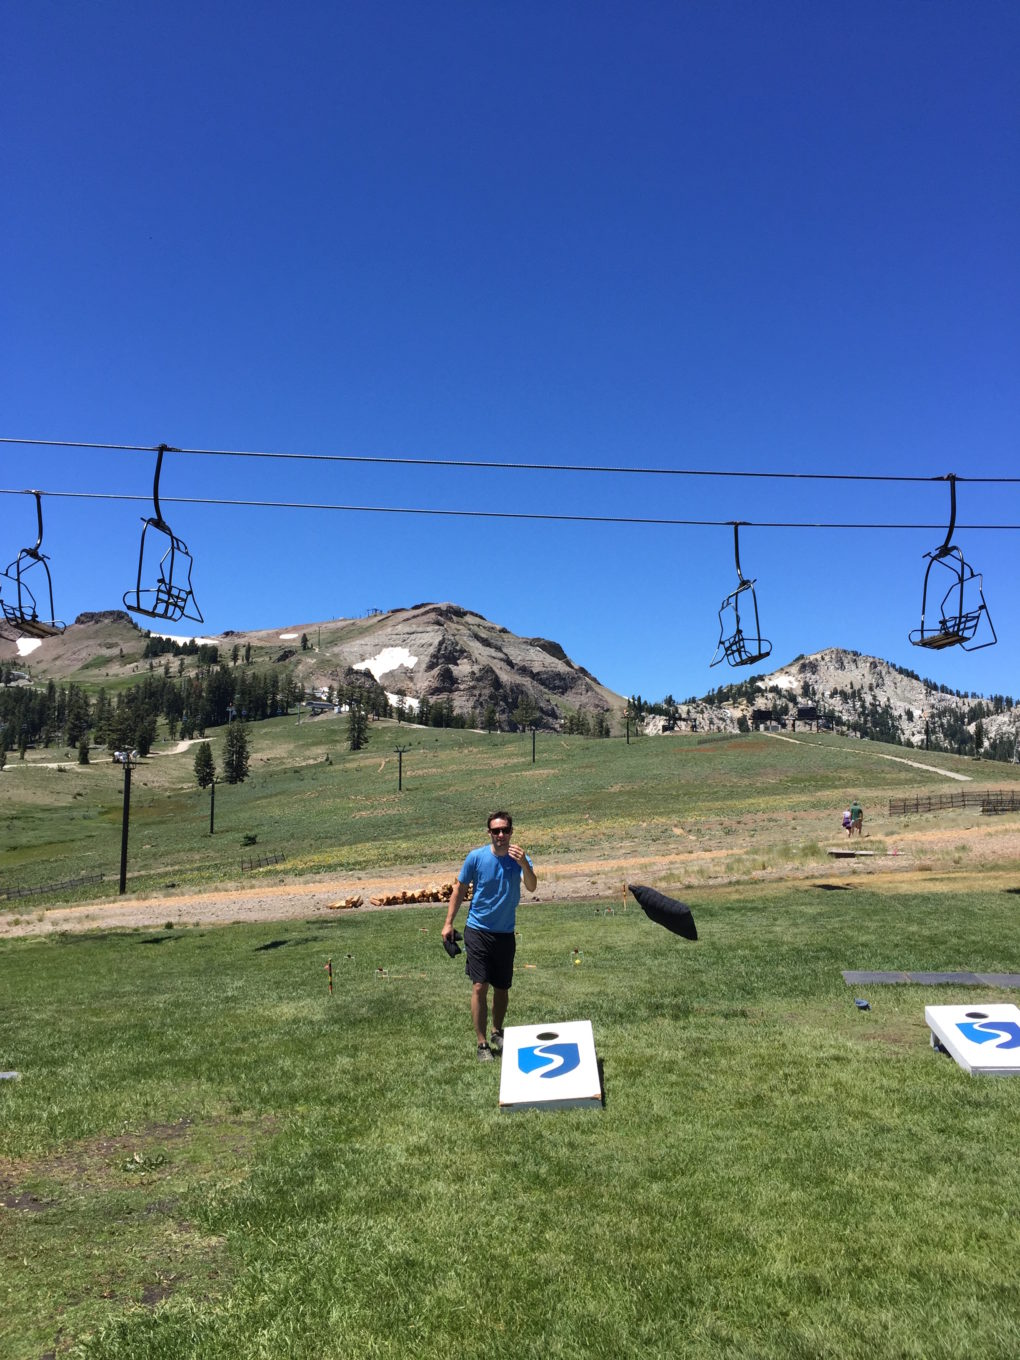 072716_SquawValley5